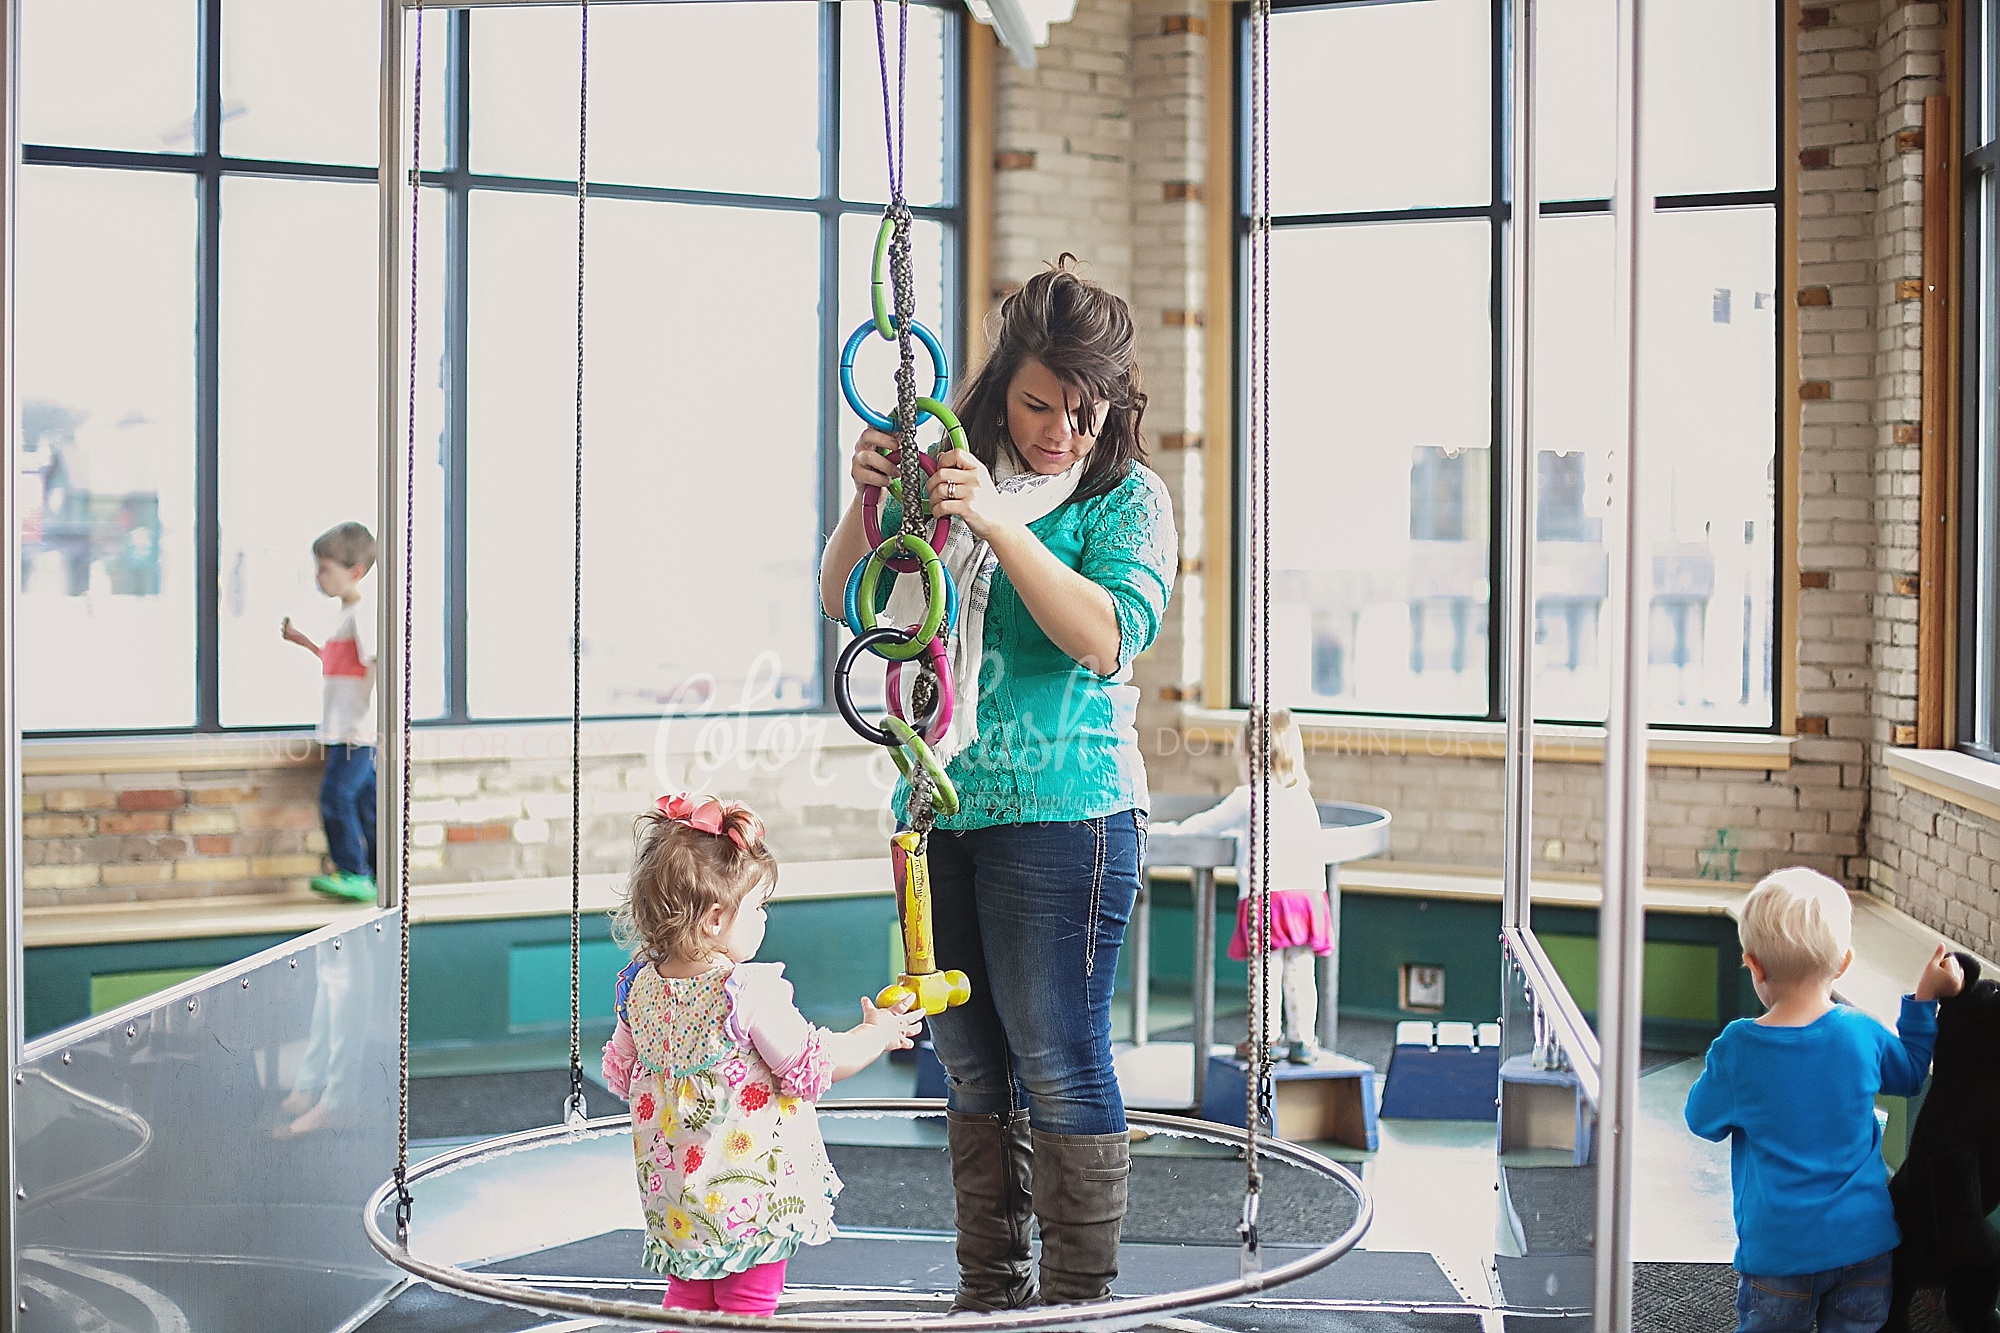 grandrapids-children's-museum_0648